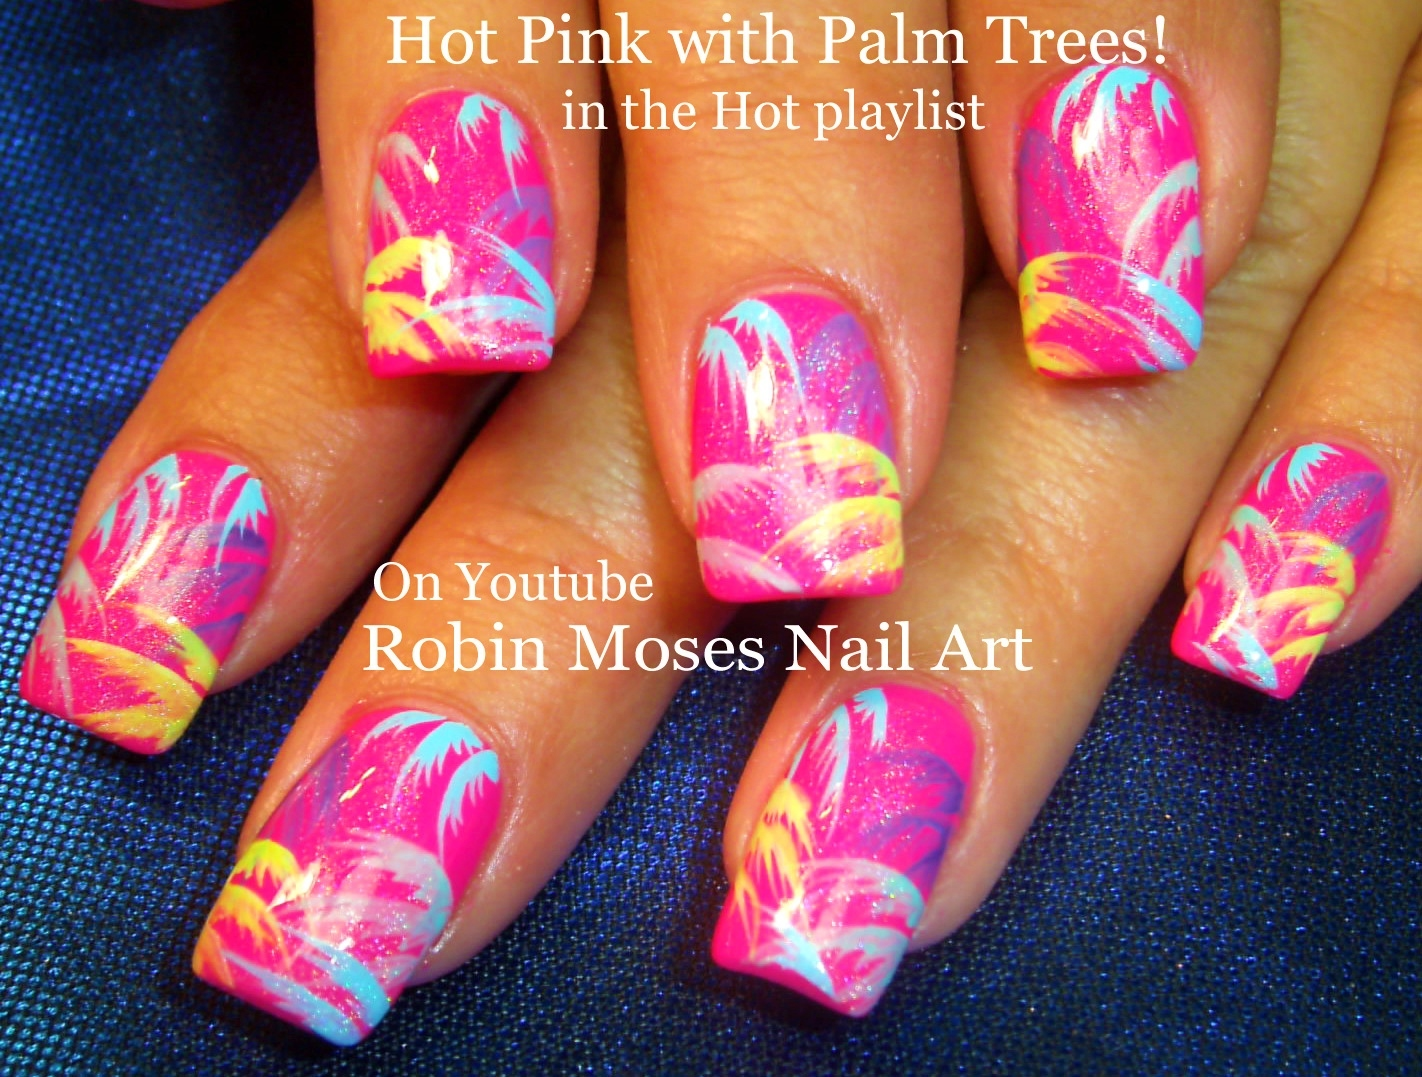 Easy Neon Pink Summer Nails Up and perfect for this summer heat! Have fun  painting! - Nail Art By Robin Moses: Easy Neon Pink Summer Nails Up And Perfect